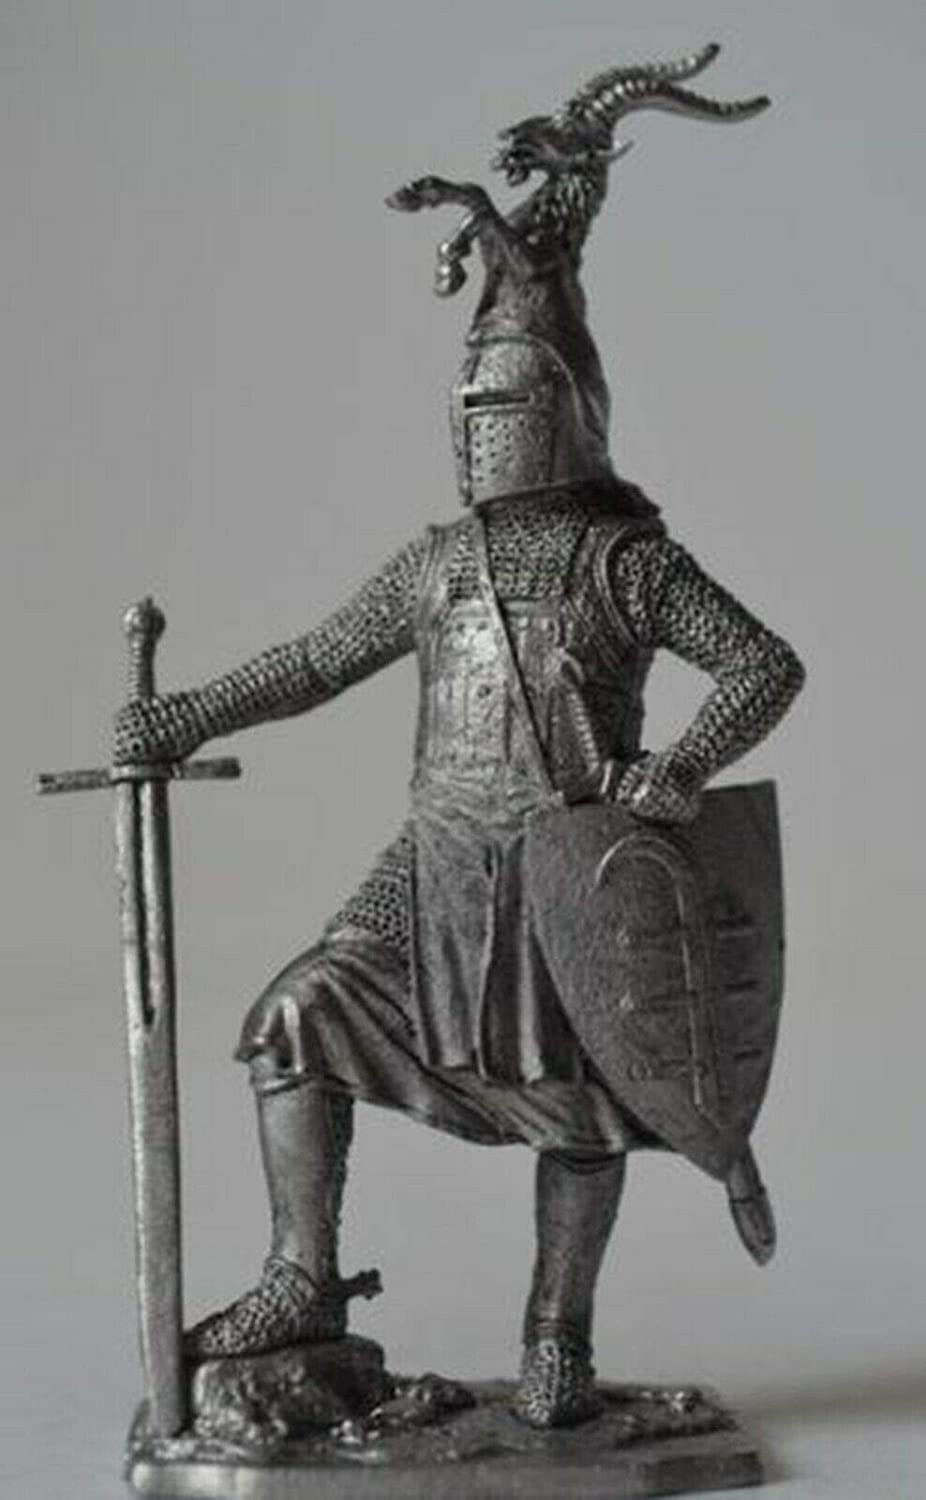 German Knight Sword 2nd Half of The 13th Сentury 1/32 Scale Unpainted Tin Figure Middle Ages Handmade Collectible Miniature